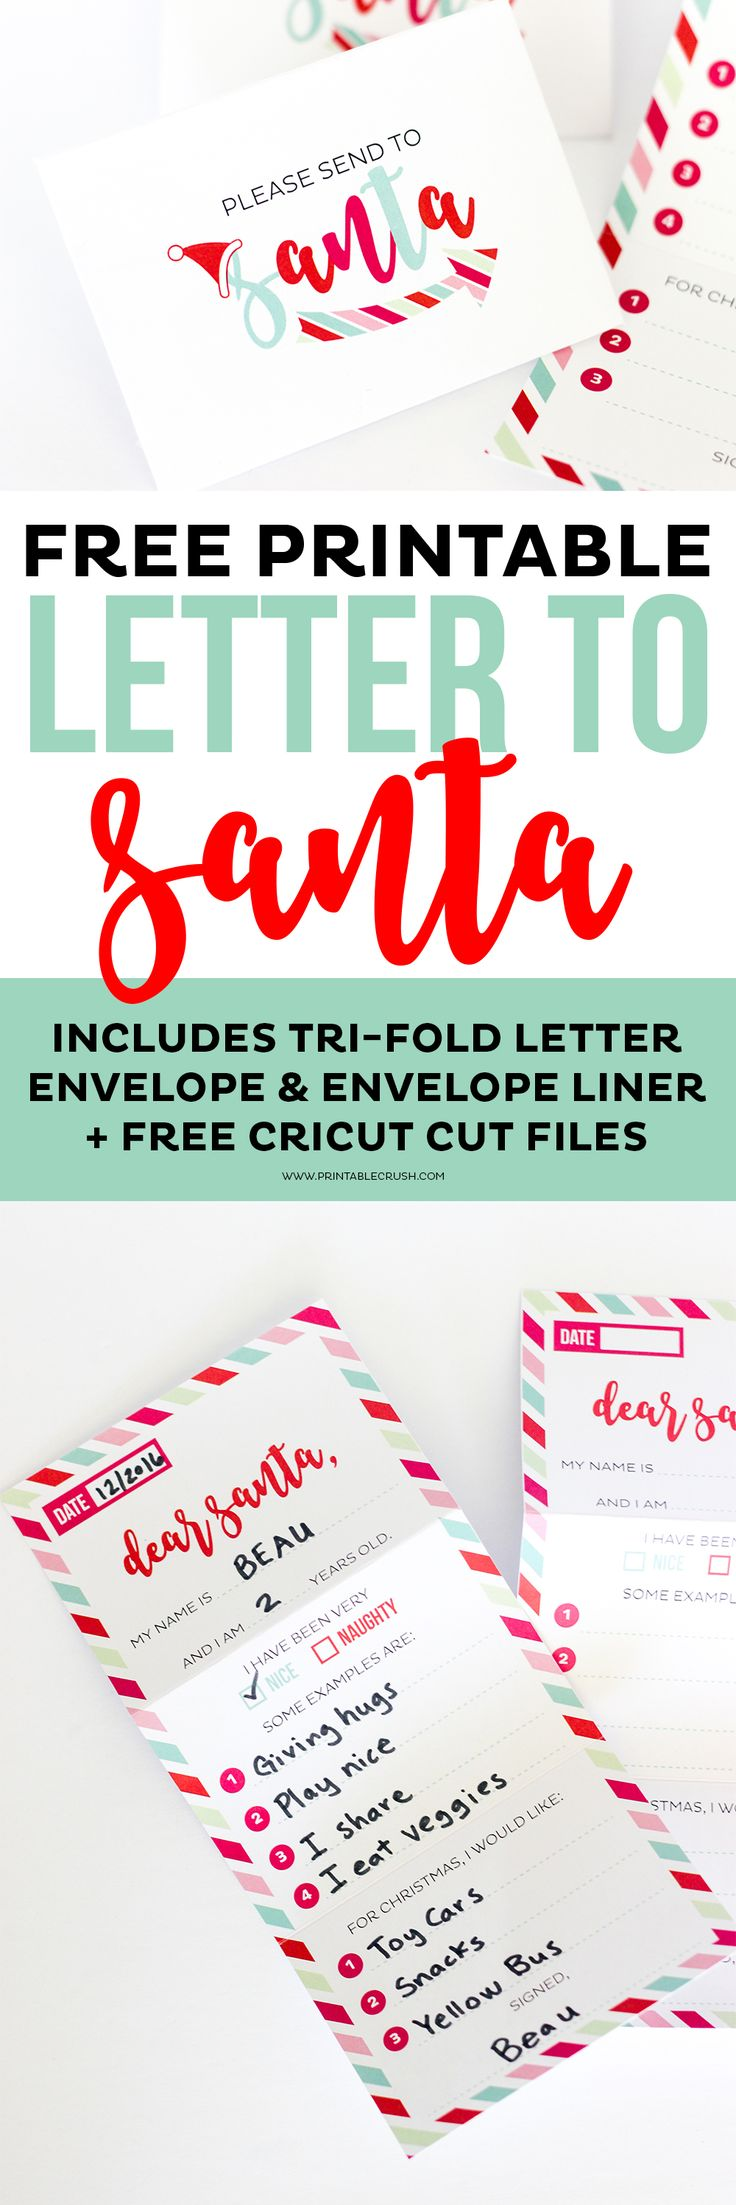 10 gorgeous christmas table decorating ideas 187 photo 2 - This Adorable Free Santa Letter Printable Set Includes A Tri Fold Letter Envelope